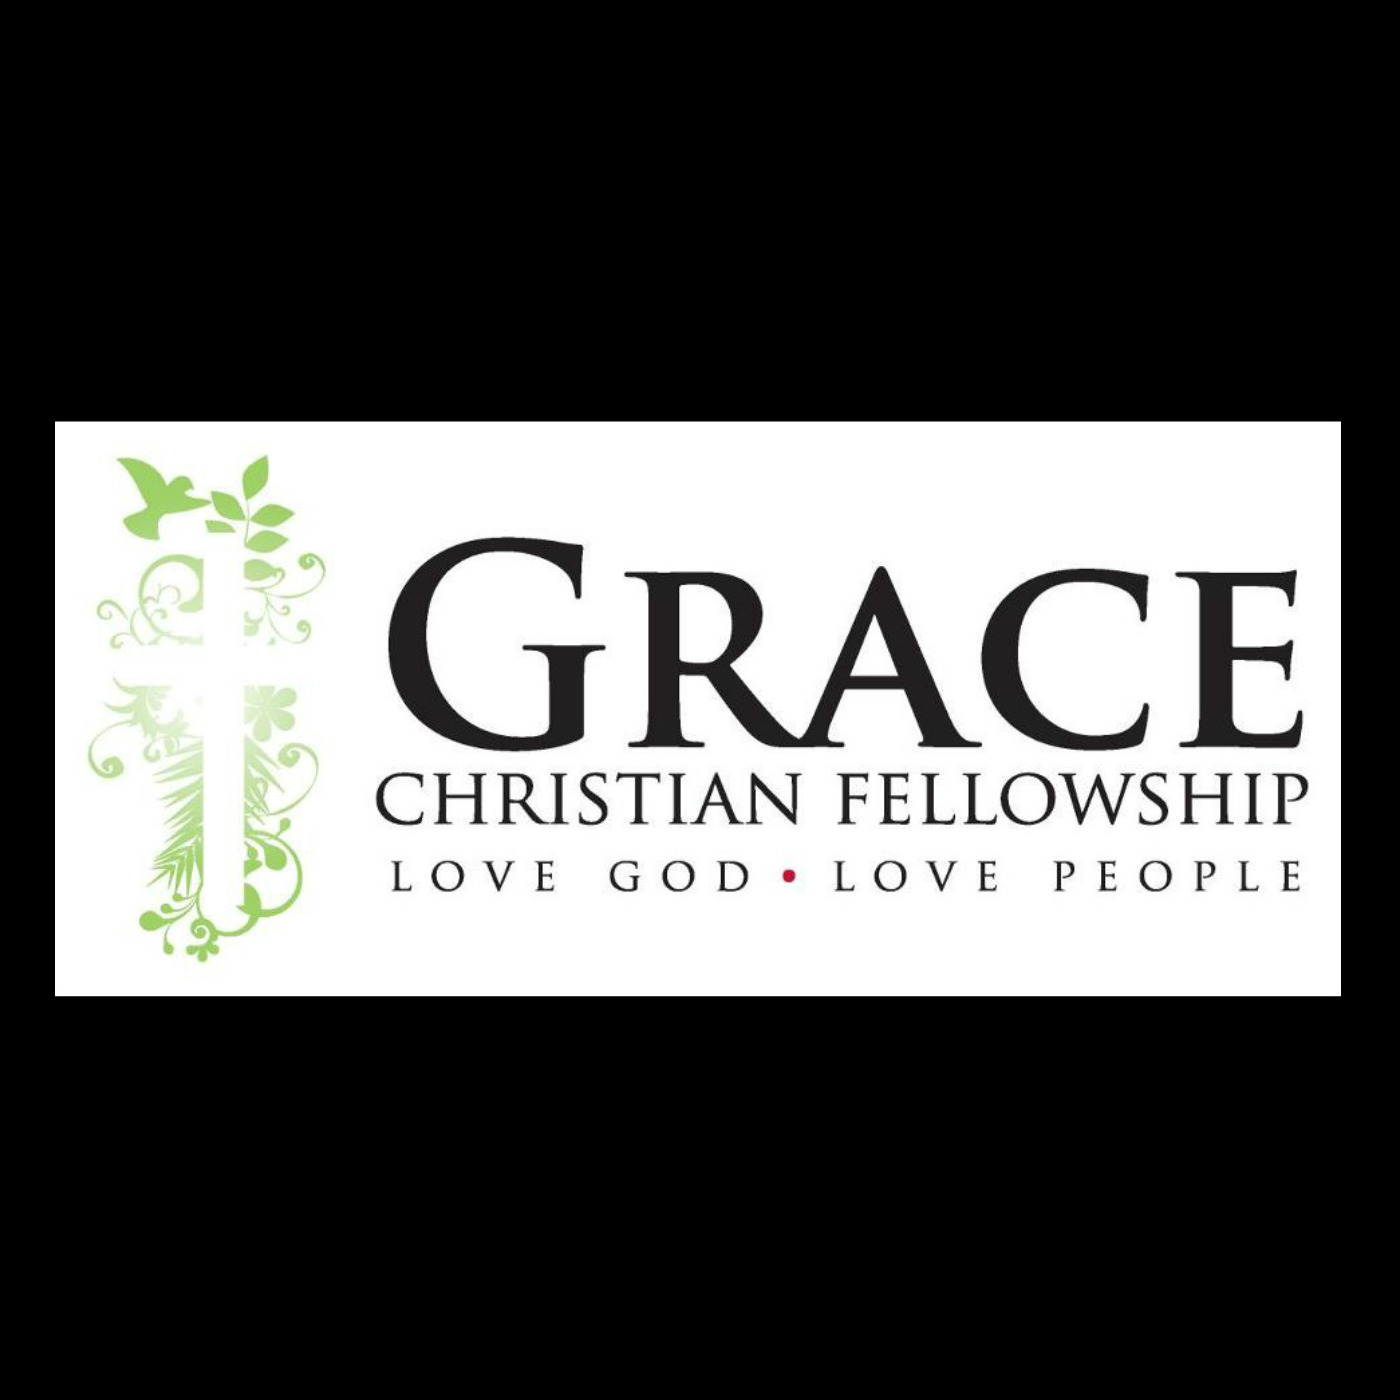 Grace Christian Fellowship, Summerville